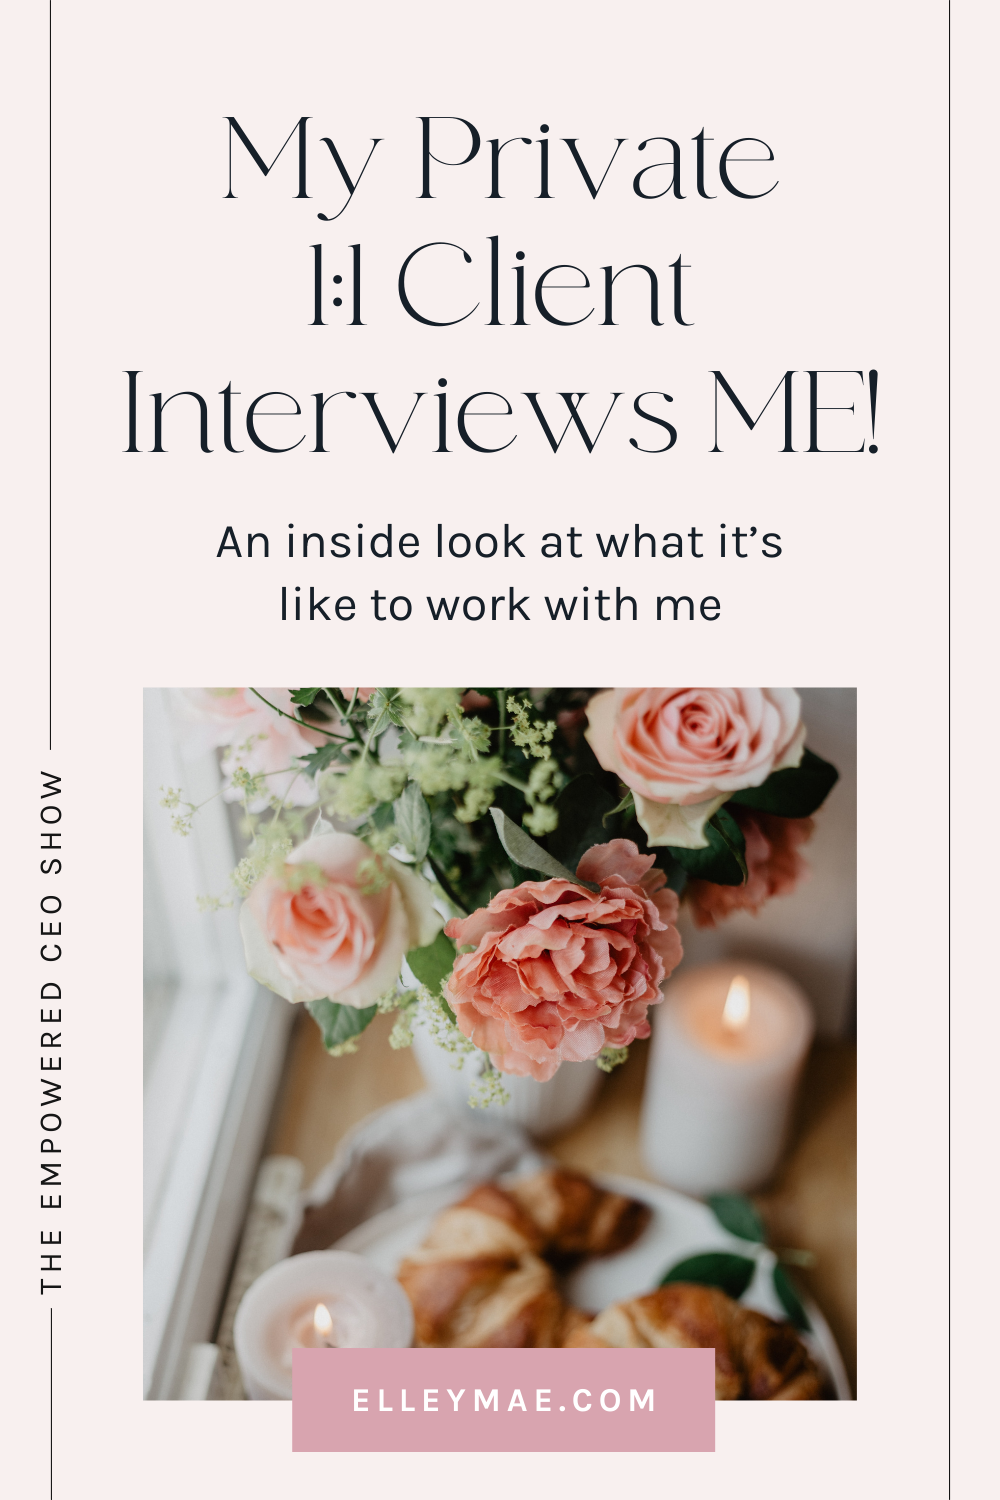 096. My Private 11 Client Interviews ME!